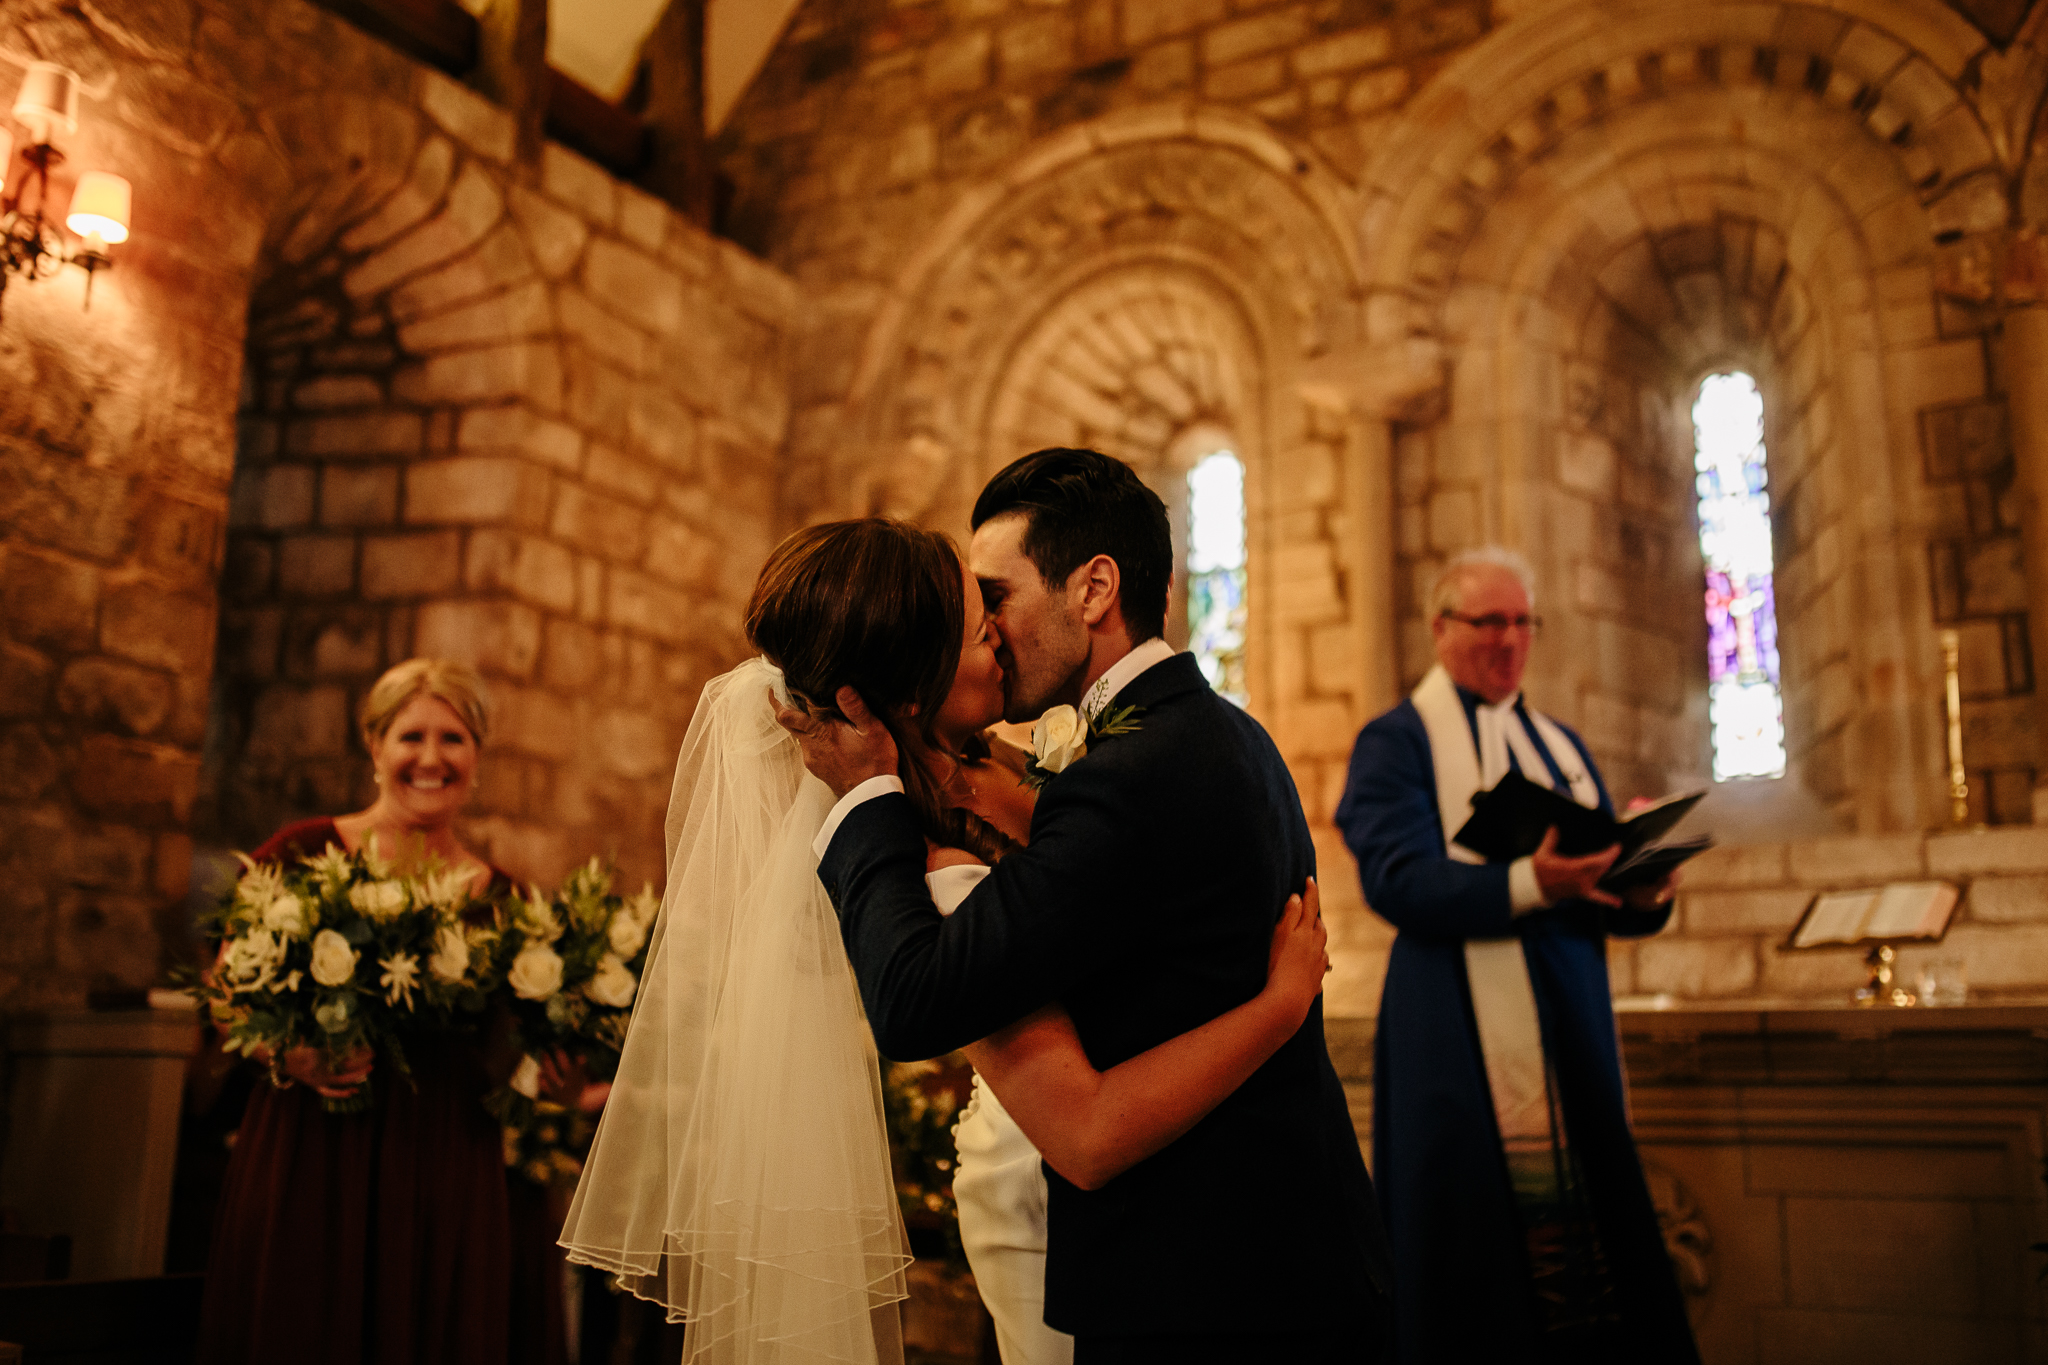 The first kiss - Kiss - Husband & Wife - Moments over mountains - Newly Wed - Bride & Groom Moments - Scotland Bride & Groom